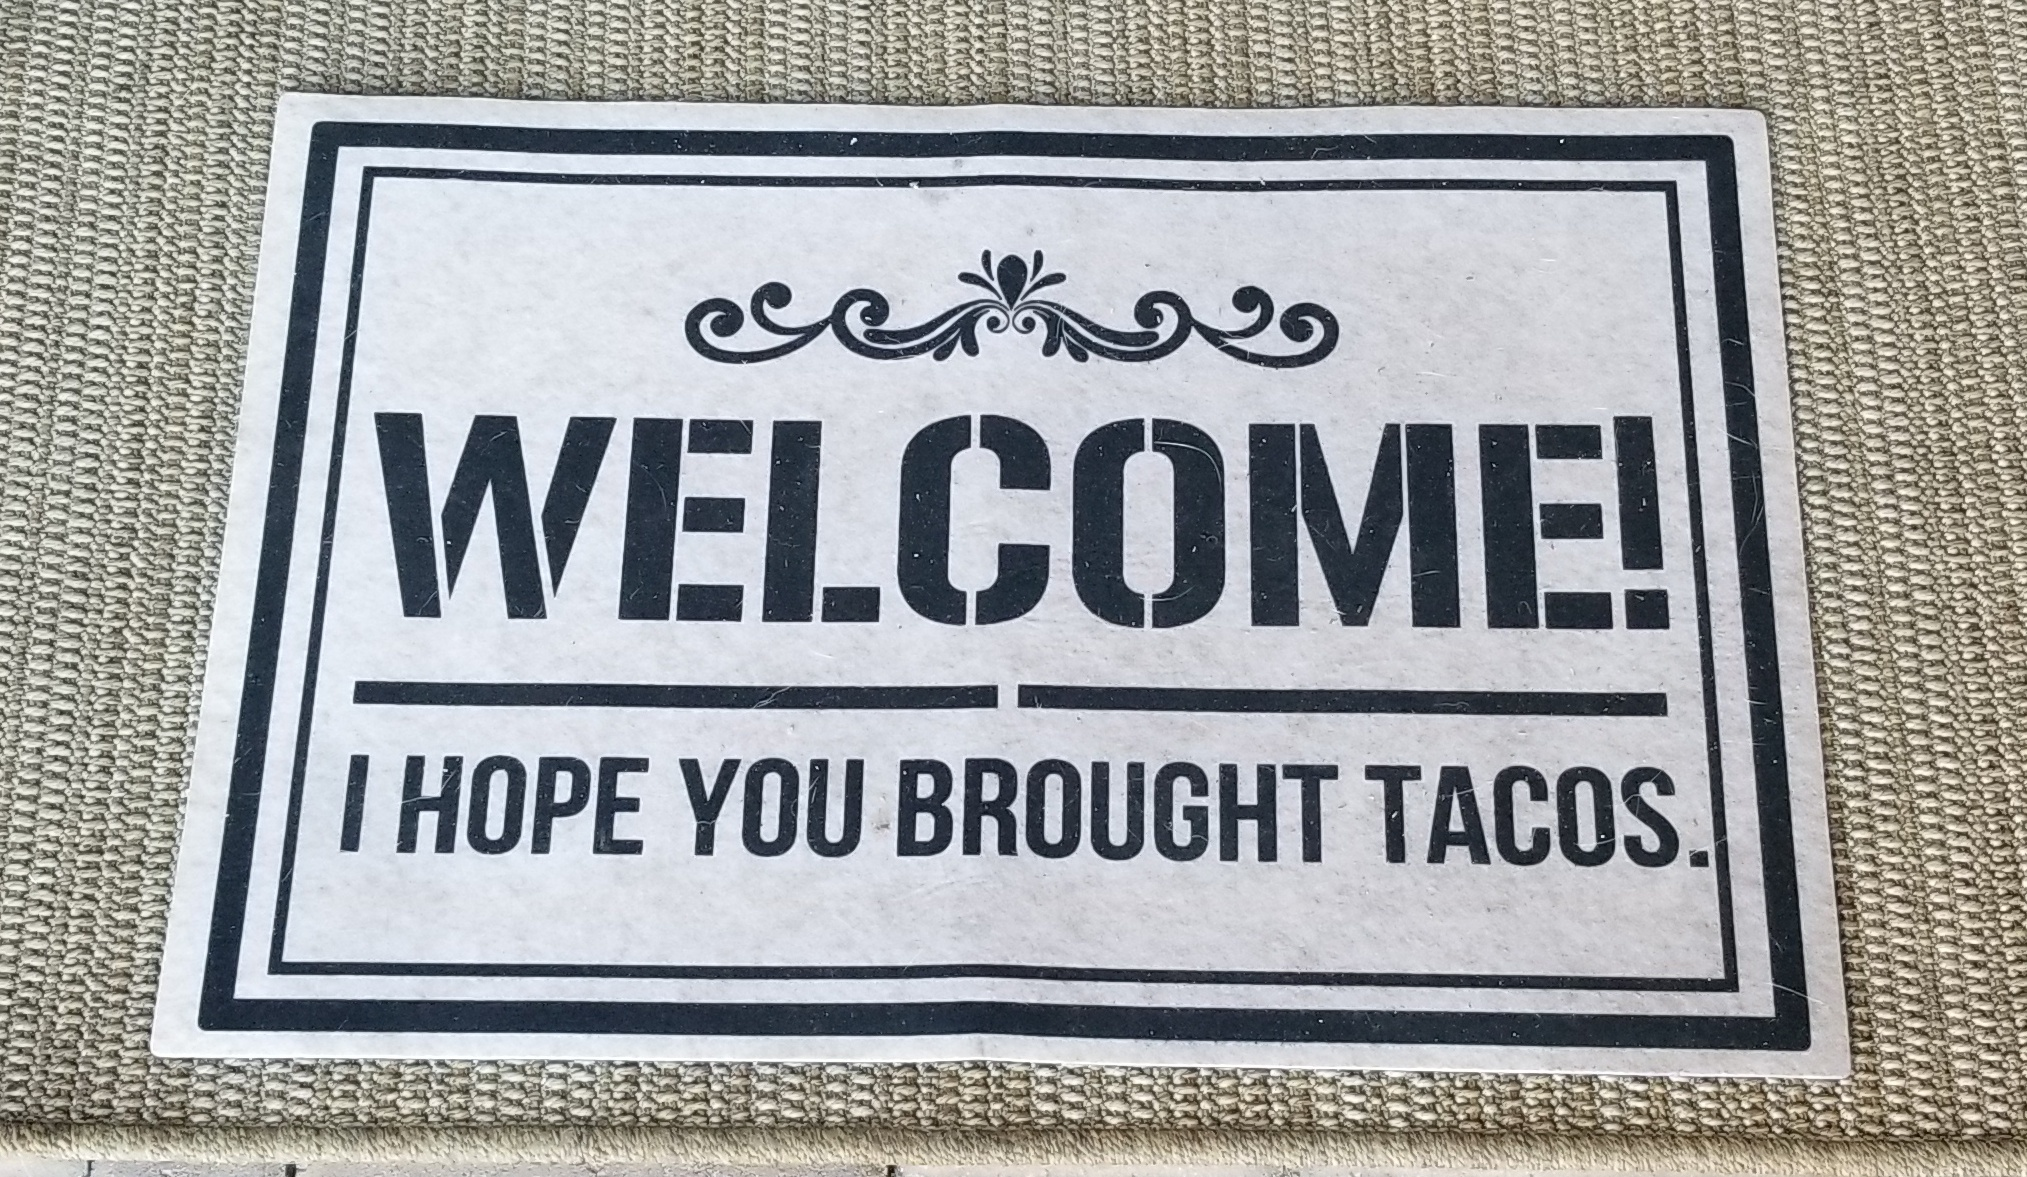 The welcome mat at Jessica's house!